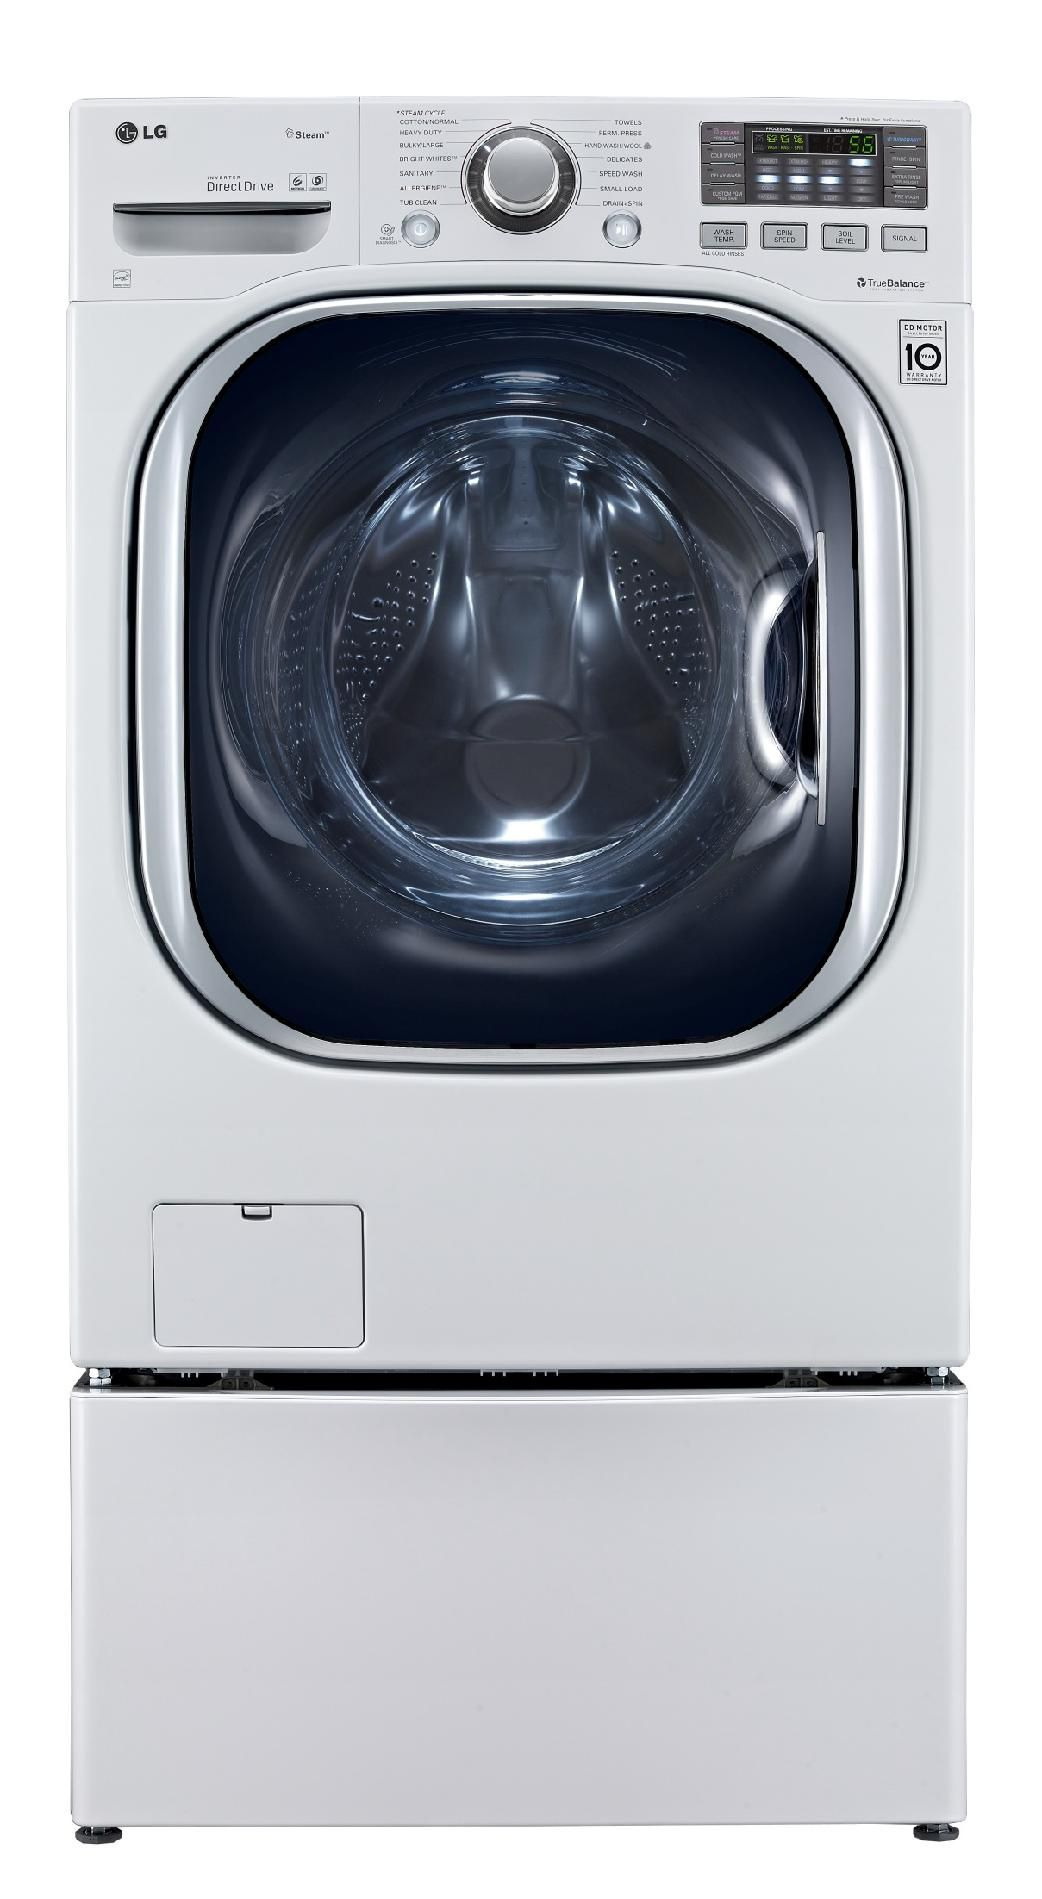 LG 4.3 cu. ft. Steam Front-Load Washer w/TurboWash™ - White